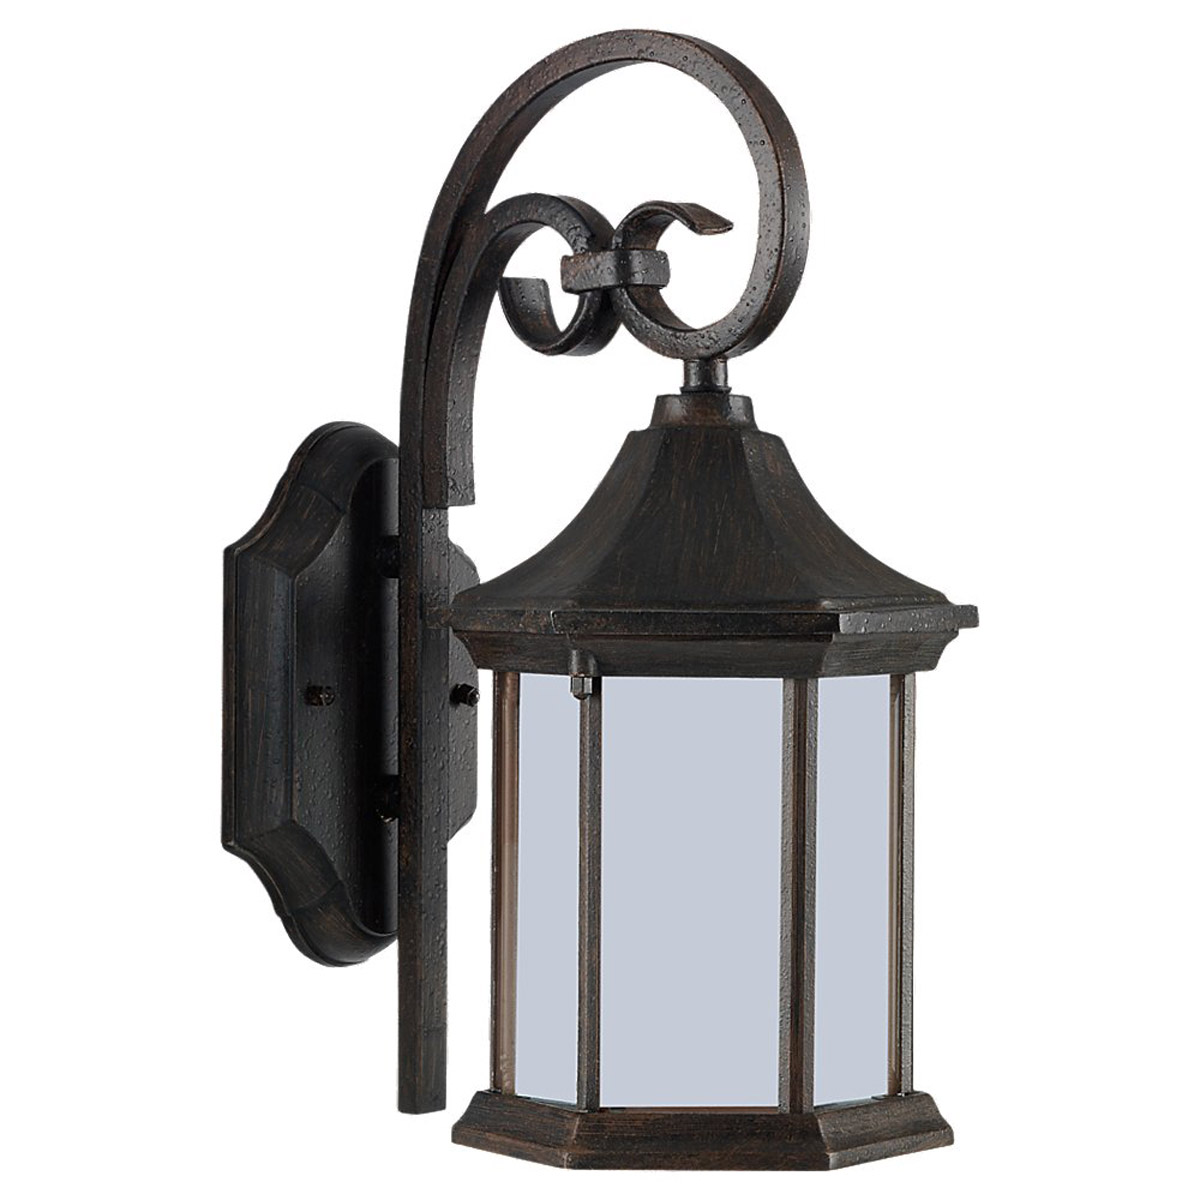 Sea Gull Lighting Ardsley Court 1 Light Outdoor Wall Lantern in Textured Rust Patina 89136BLE-08 photo